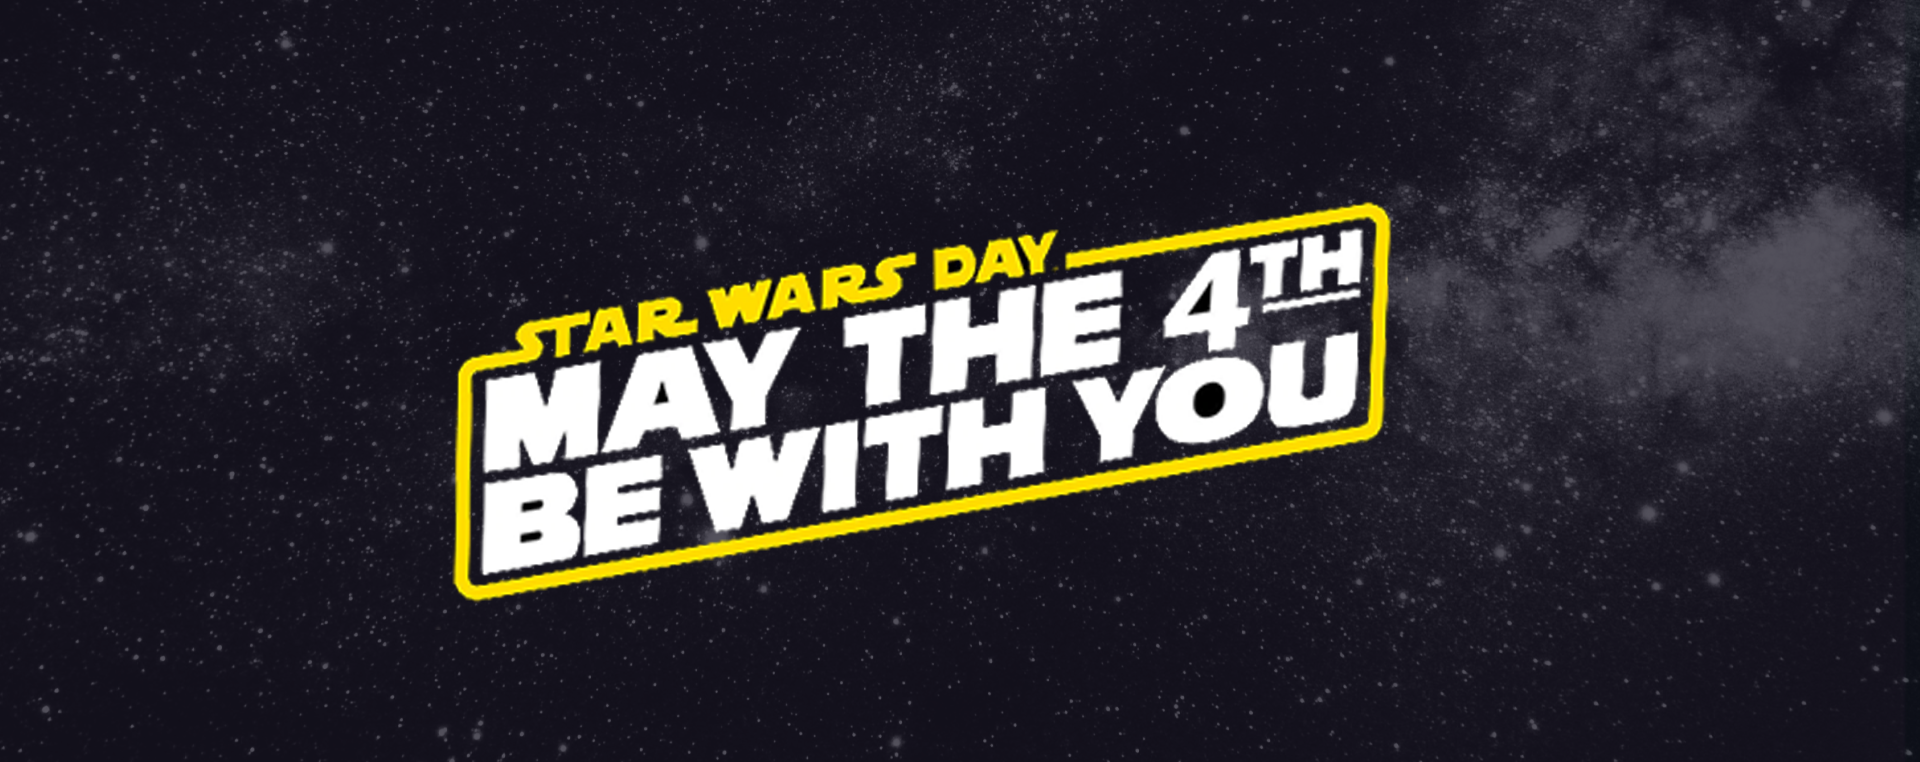 Star Wars May the fourth Be with you! -